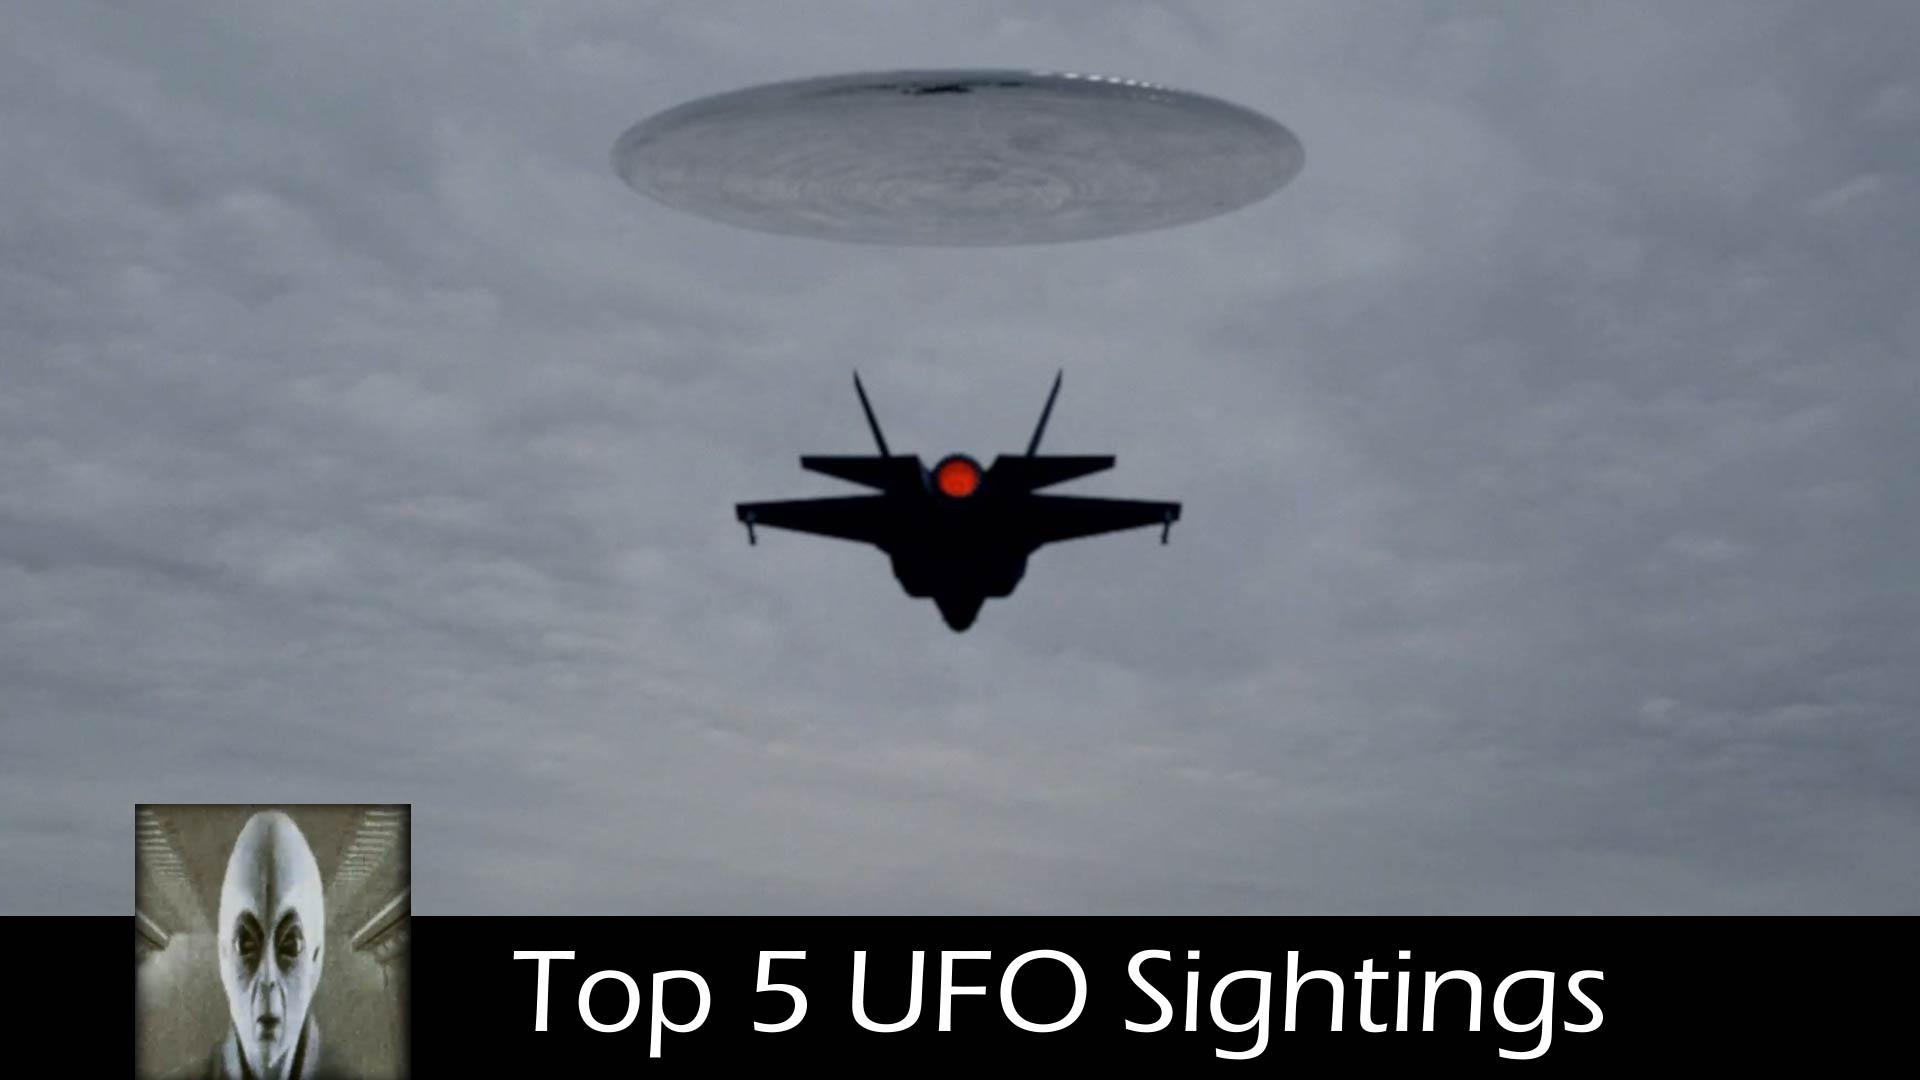 Top 5 UFO Sightings